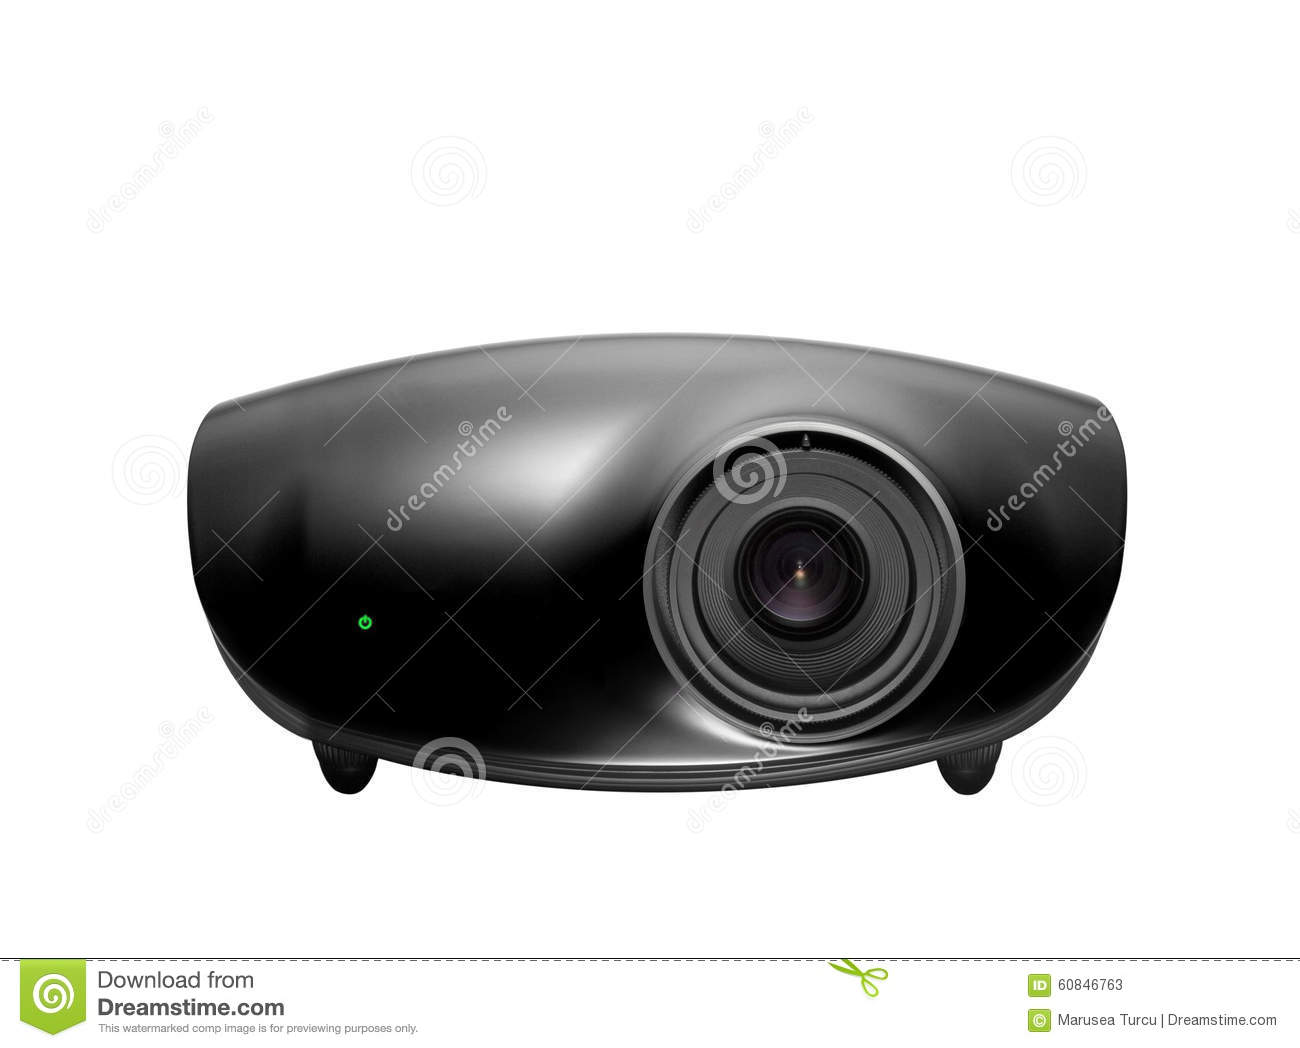 Multimedia projector isolated